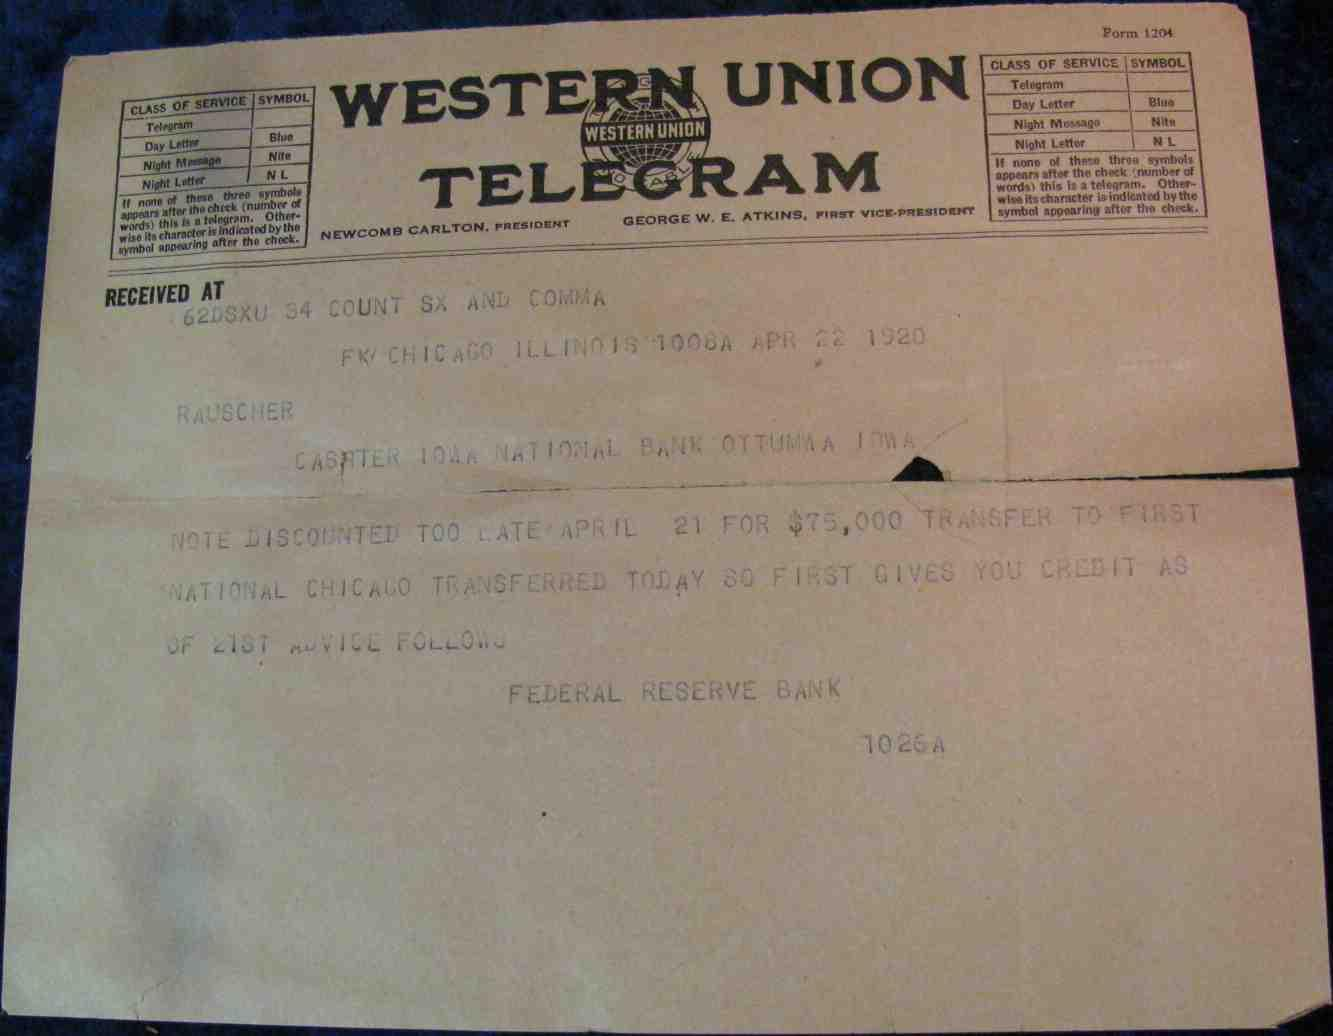 1920 Western Union Telegraph For The Iowa National Bank Of Ottumwa